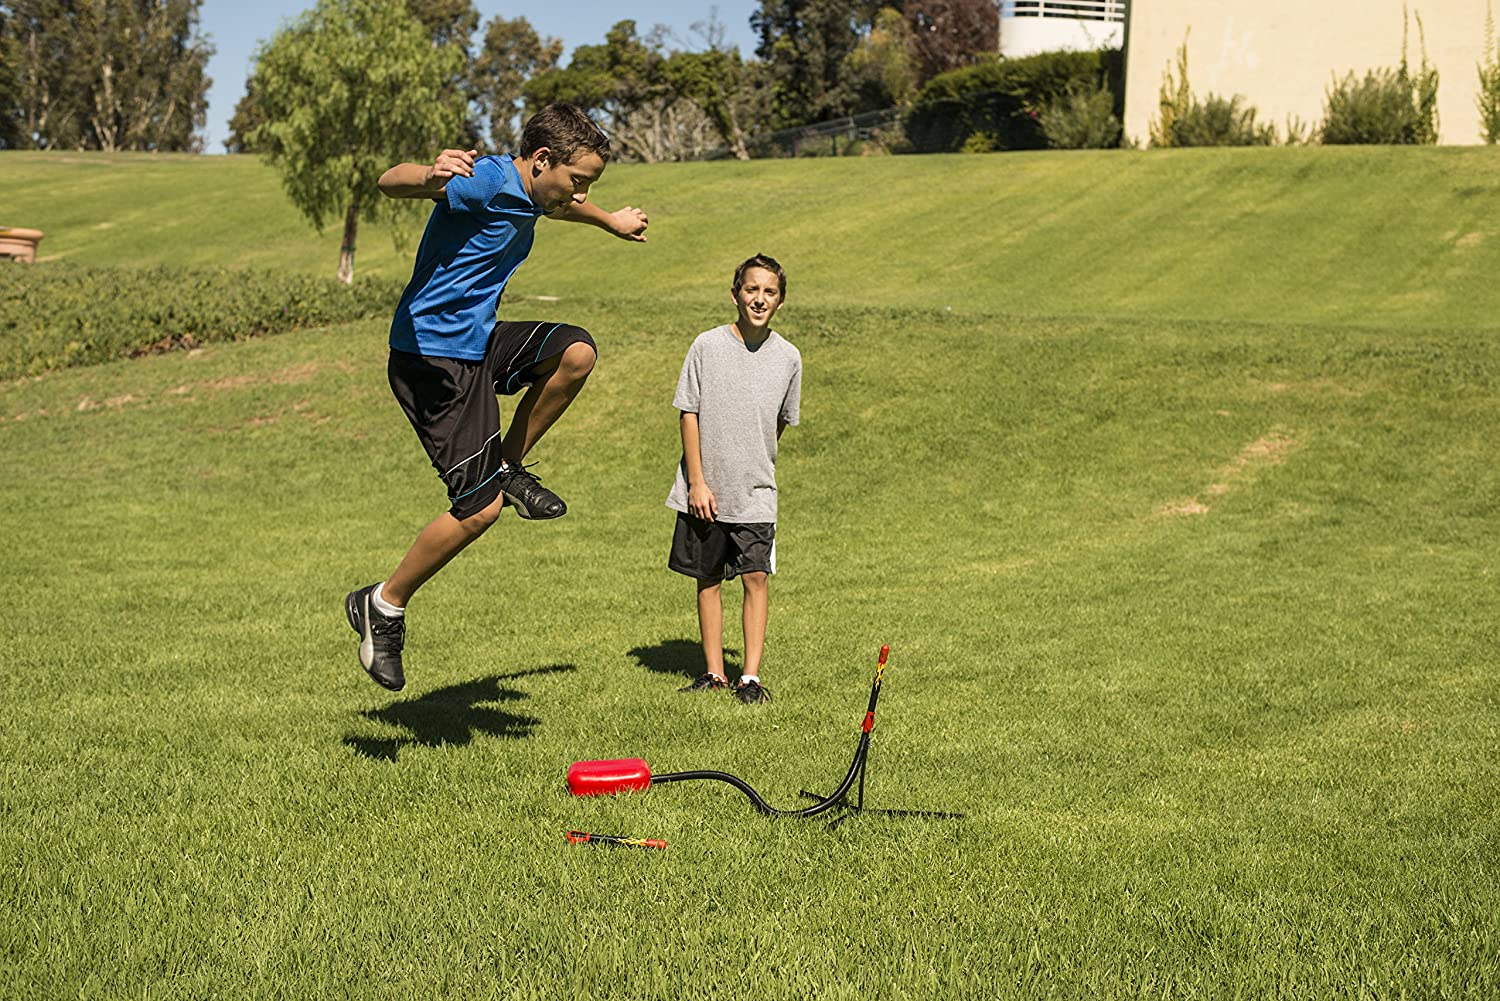 Stomp Rocket Extreme Rocket 6 Rockets - Outdoor Rocket Toy Gift for Boys